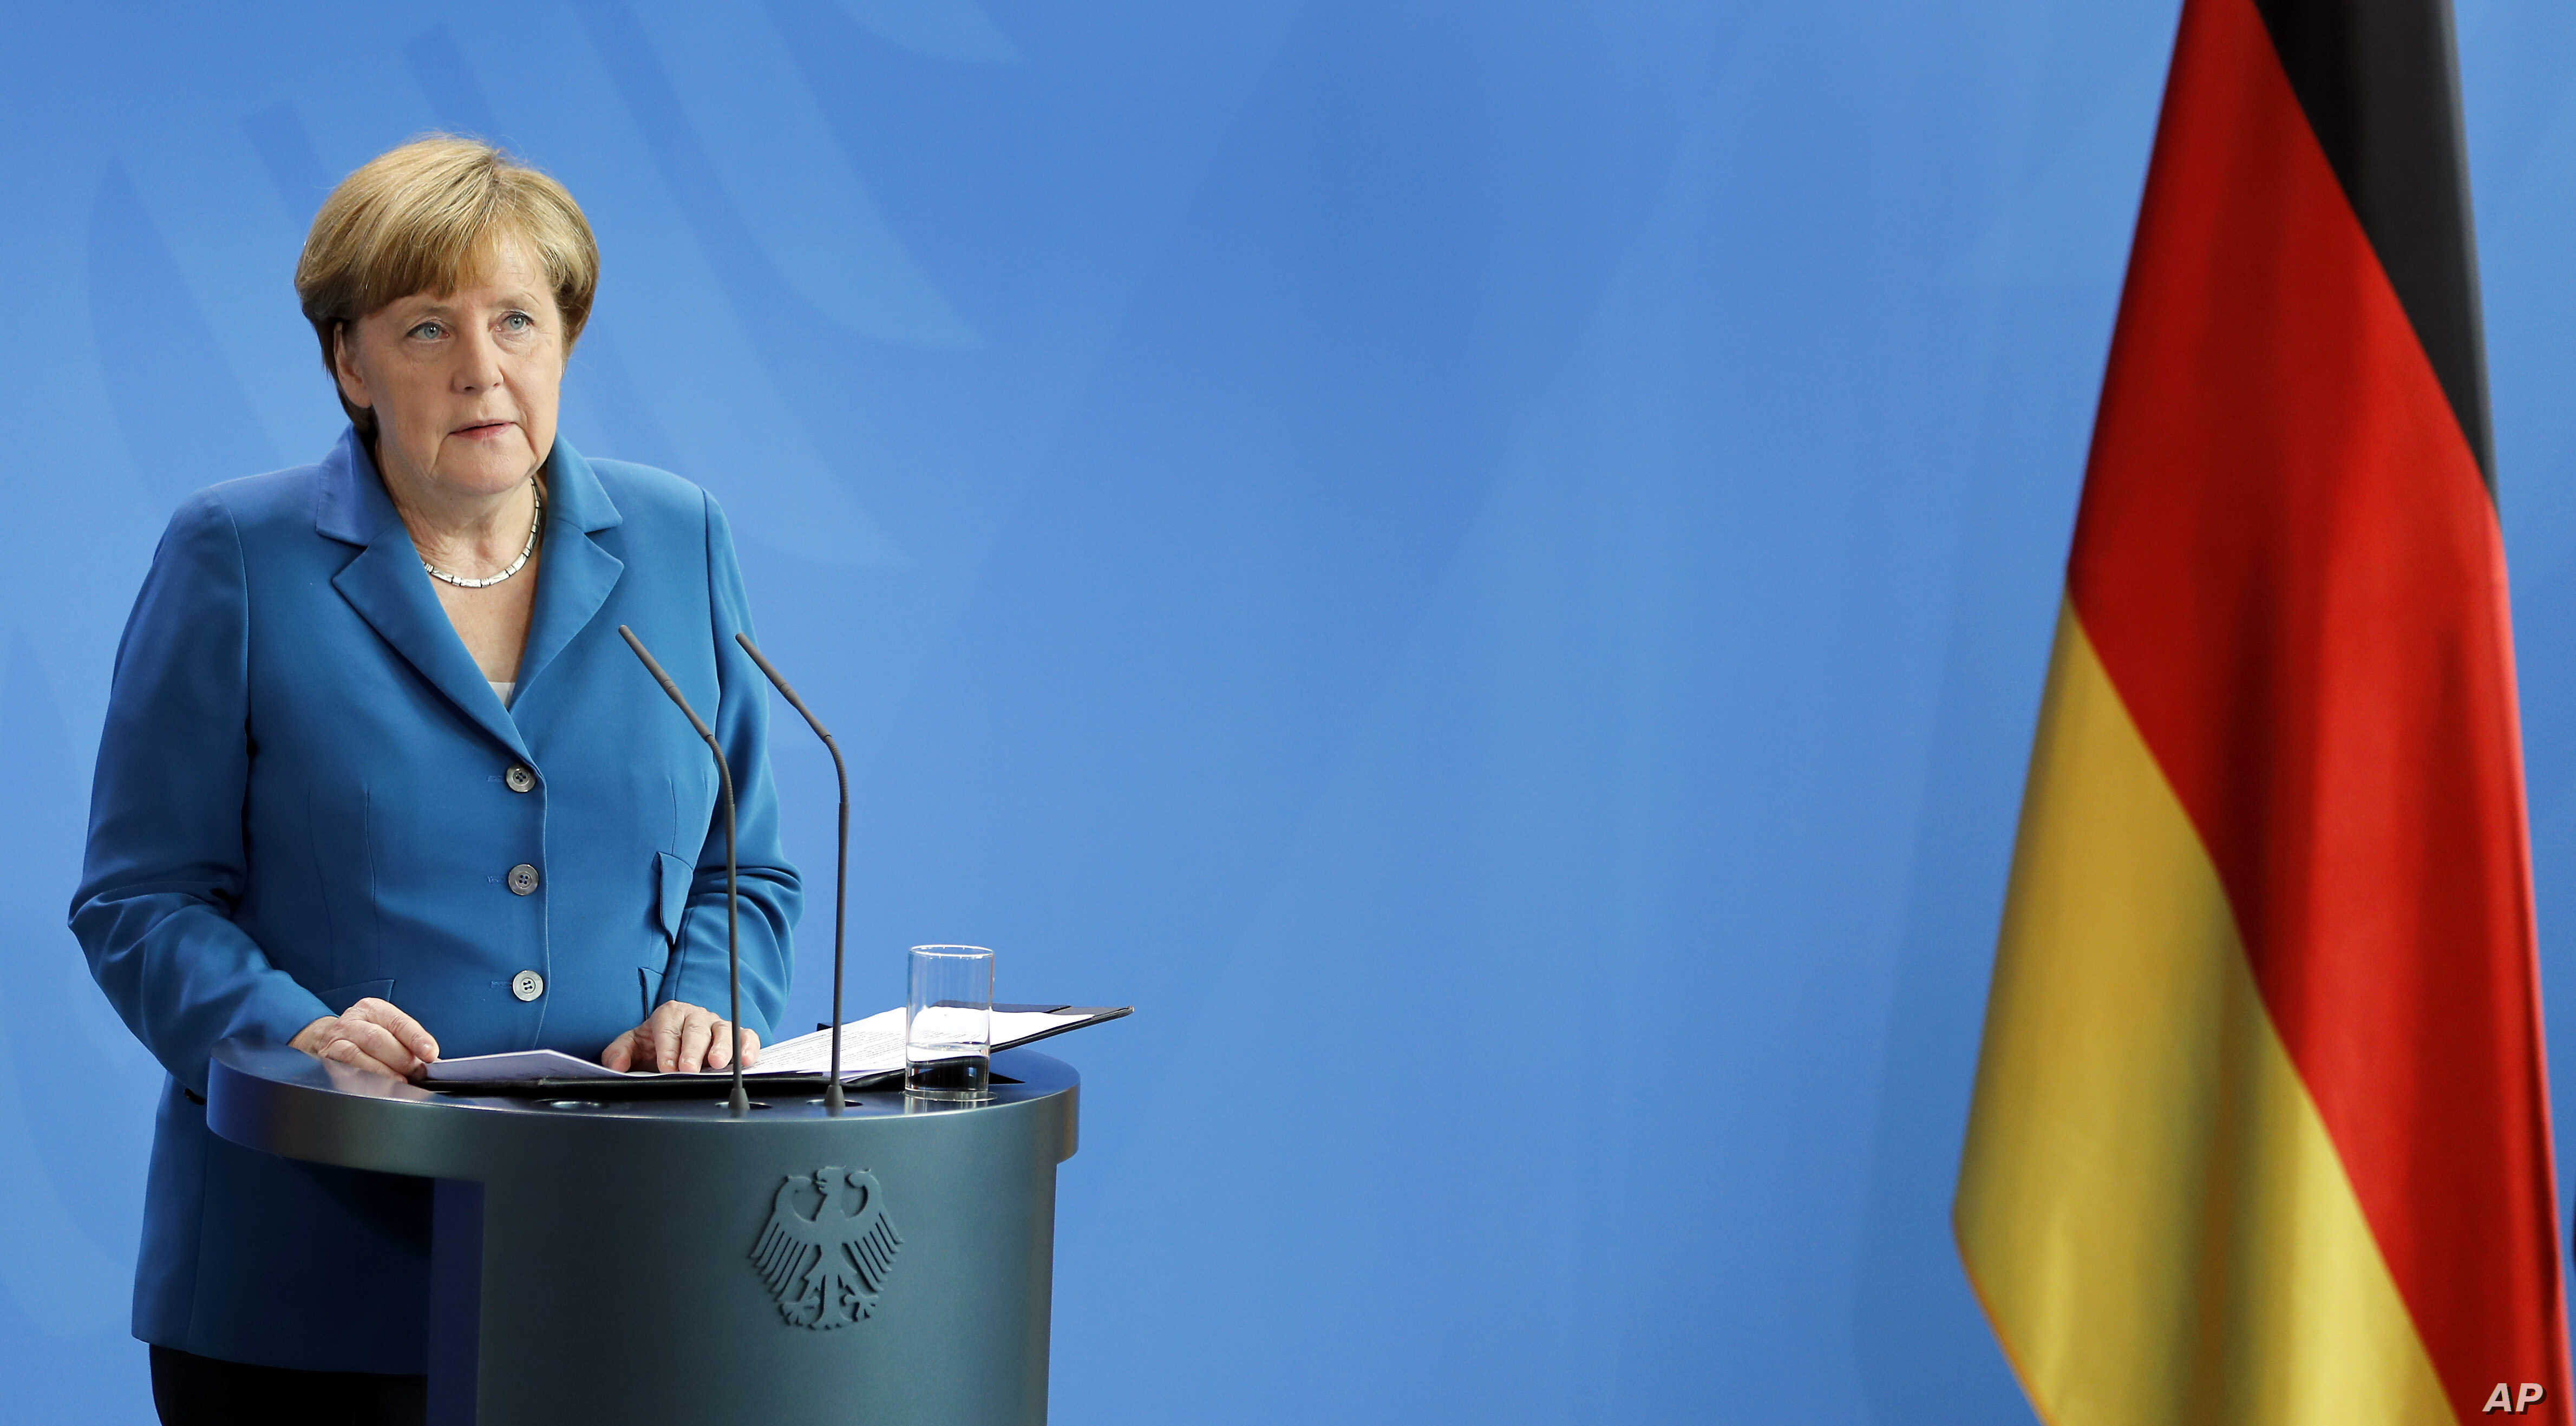 German Chancellor Angela Merkel addresses the media during a statement in Berlin, Germany, Saturday, July 23, 2016 on the Munich attack.